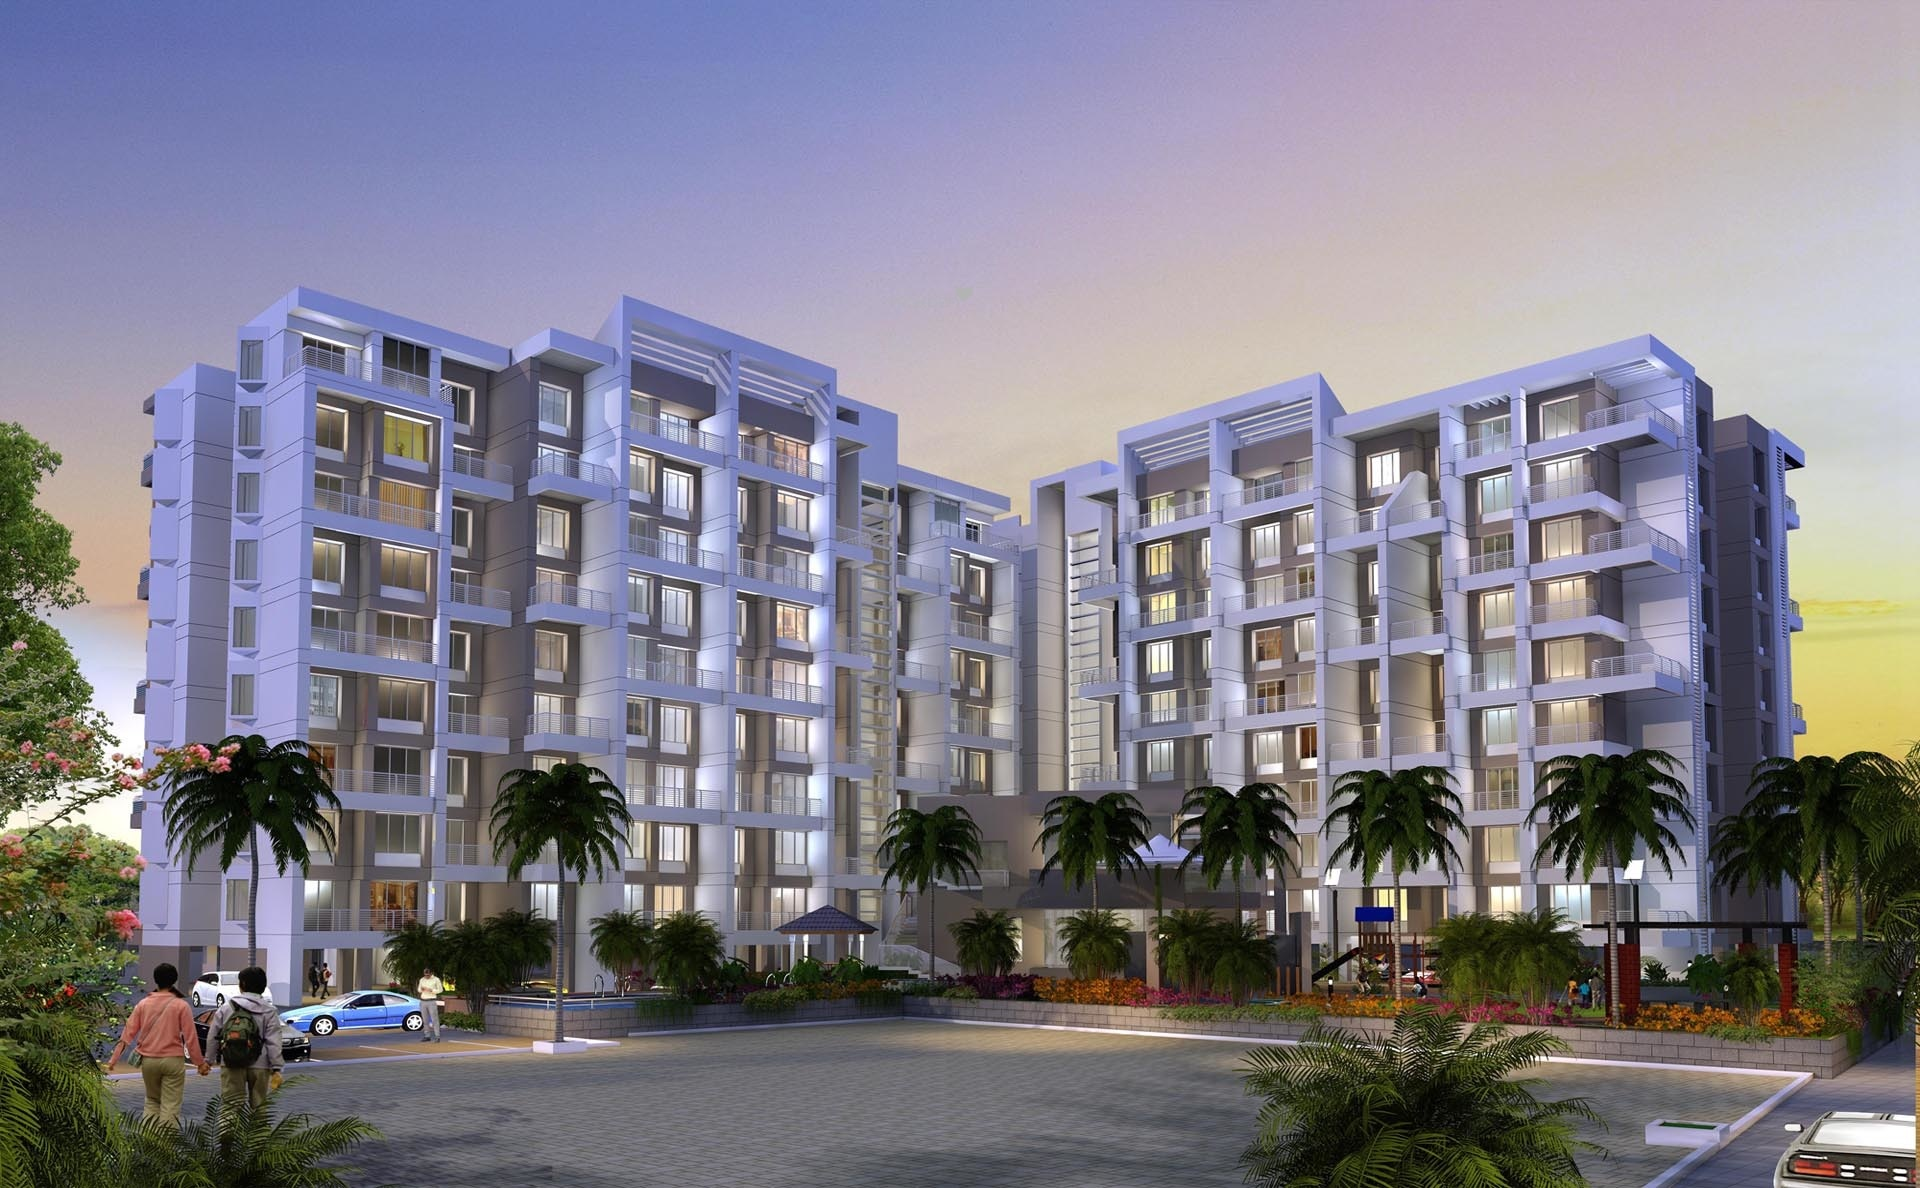 588 sq ft 1BHK 1BHK+1T (588 sq ft) Property By Proptiger In IRA, Undri